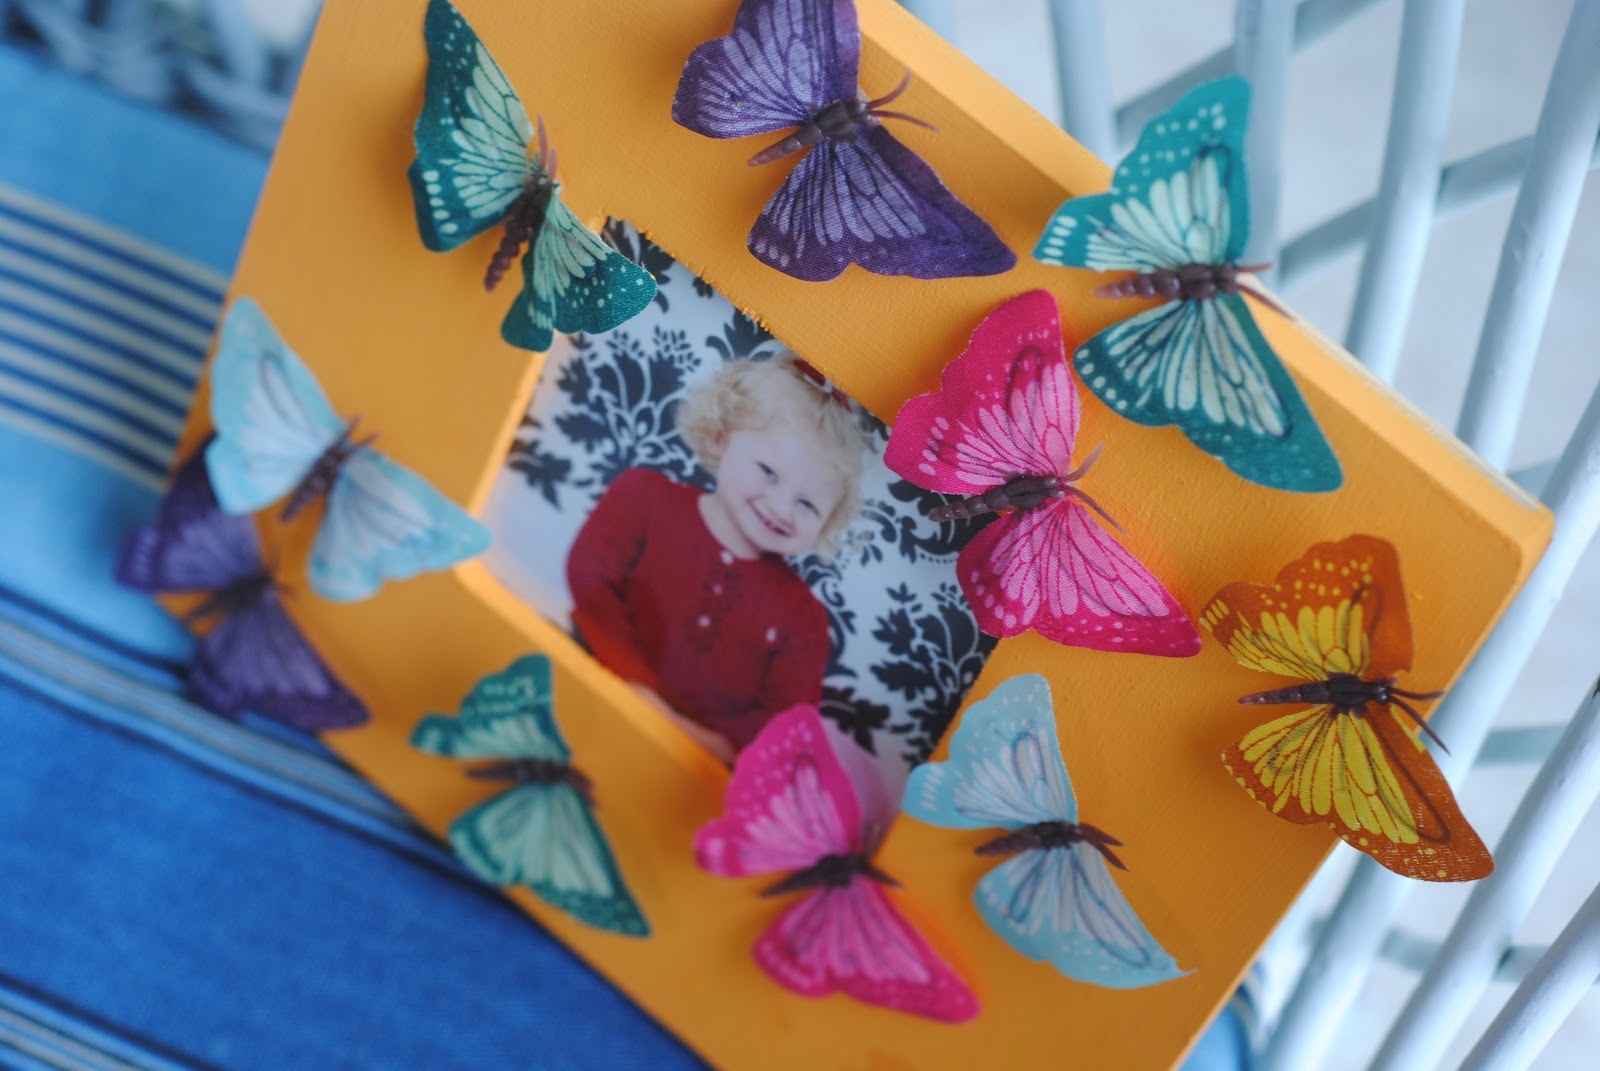 5 ways to decorate a craft frame kids craft ideas making lemonade craft idea 3 butterfly frame jeuxipadfo Choice Image